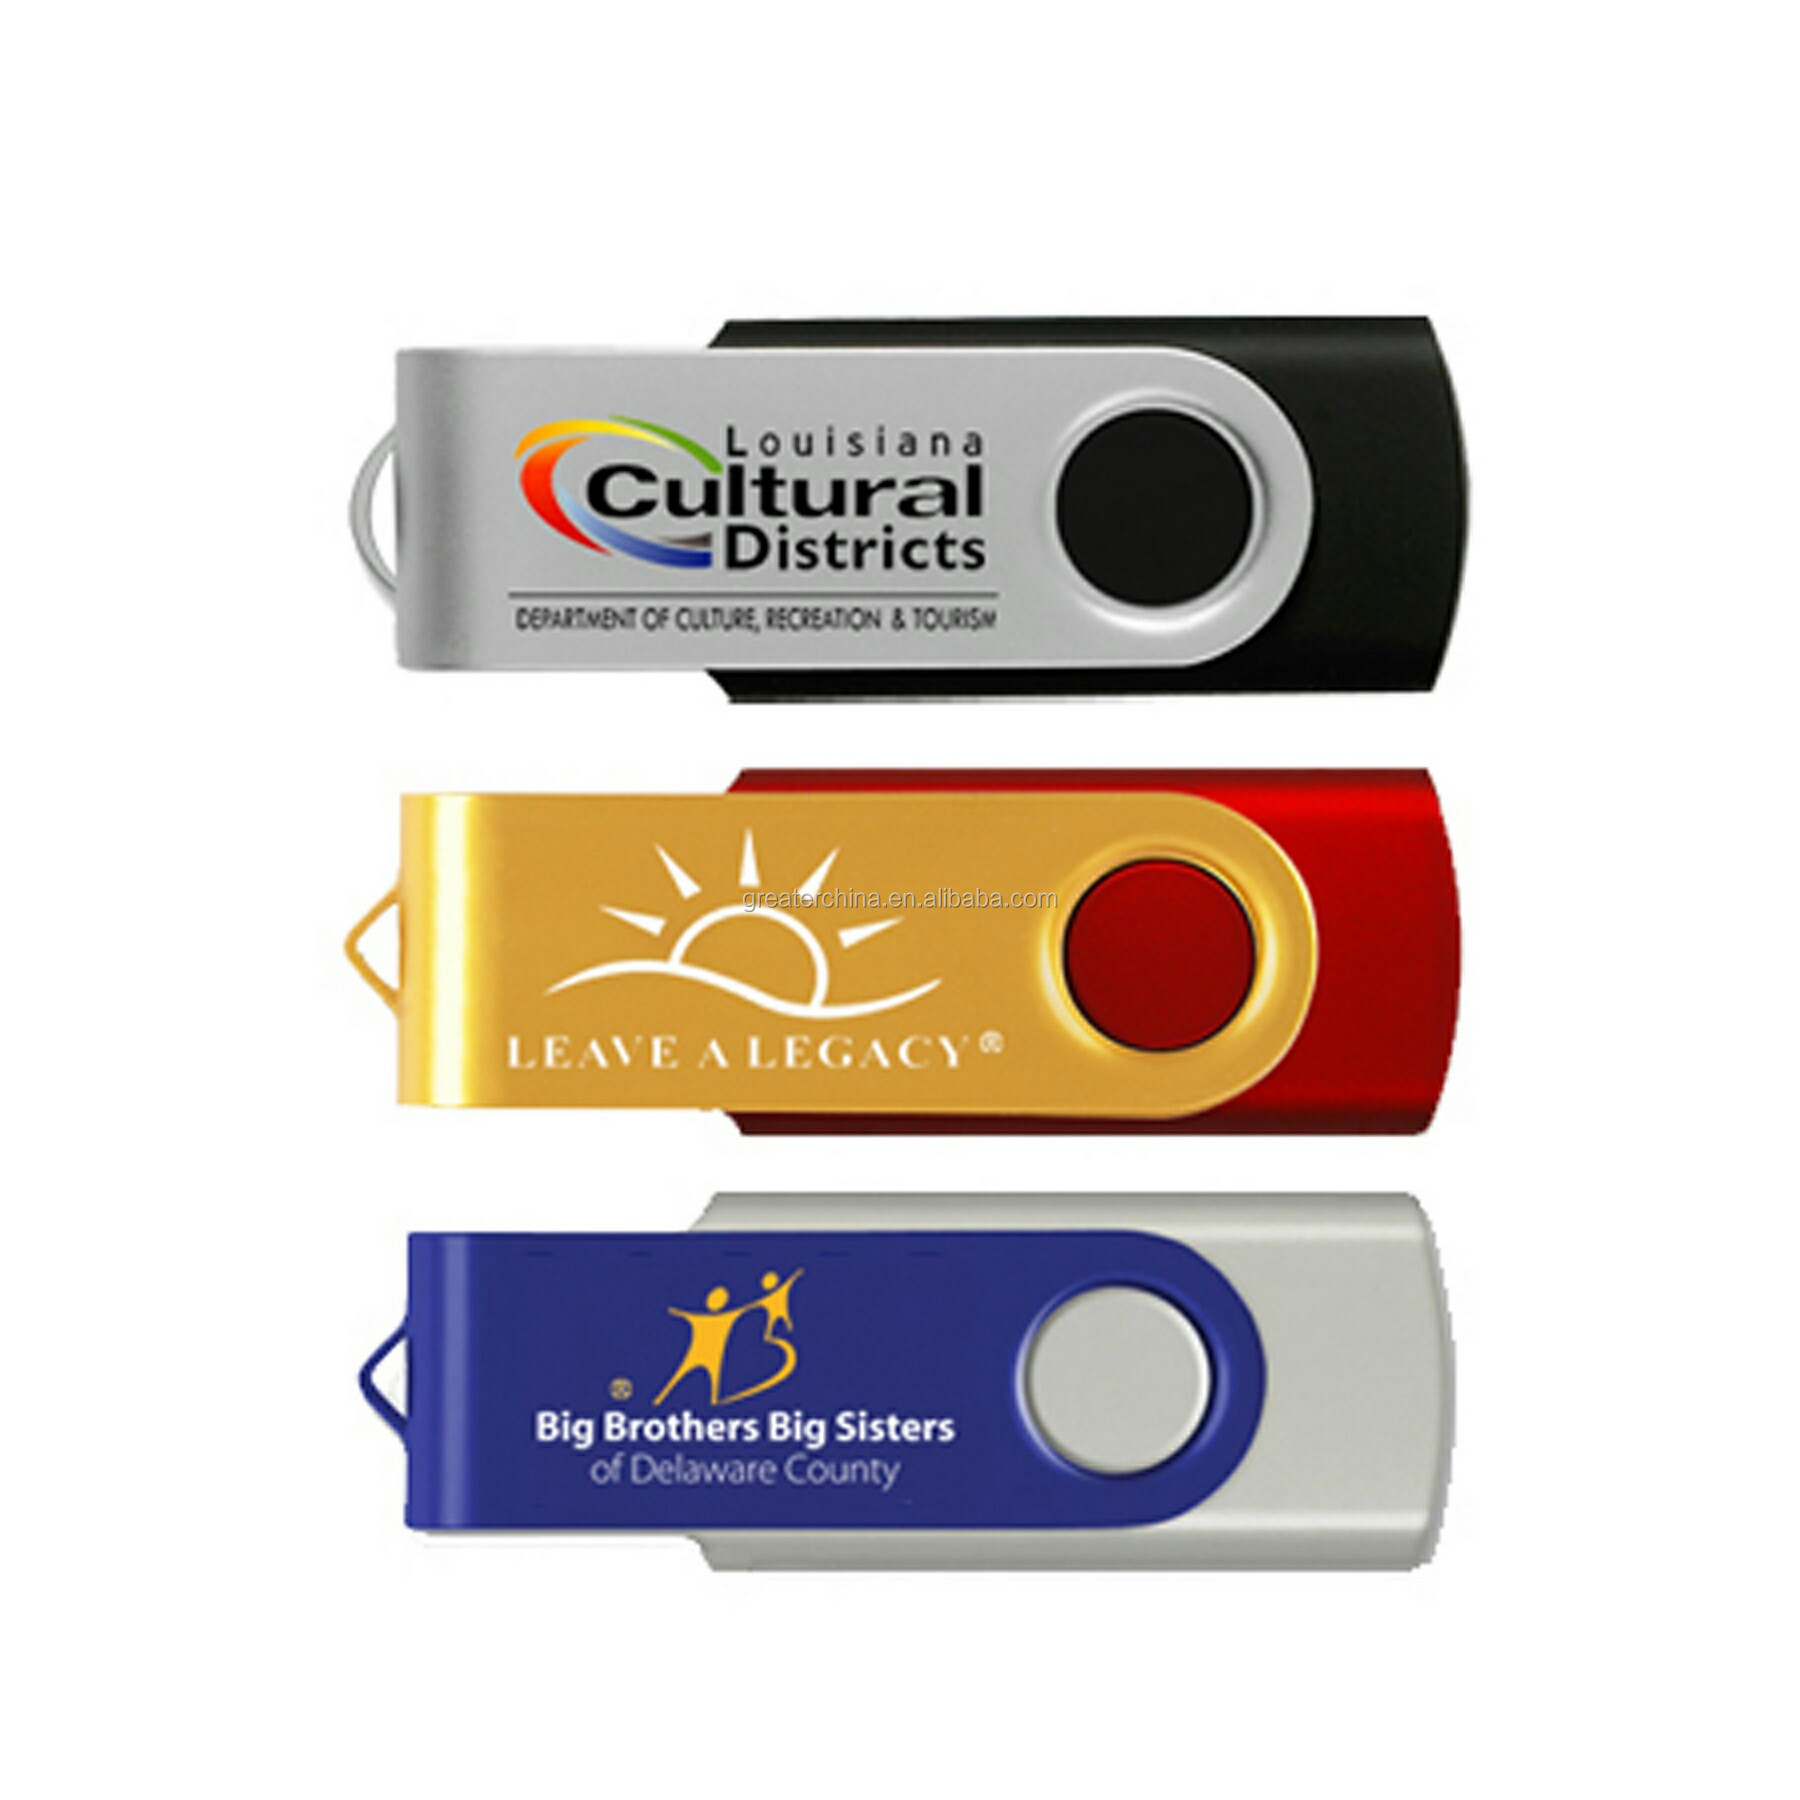 Promotional USB Flash Drive, Classical USB flash Disk